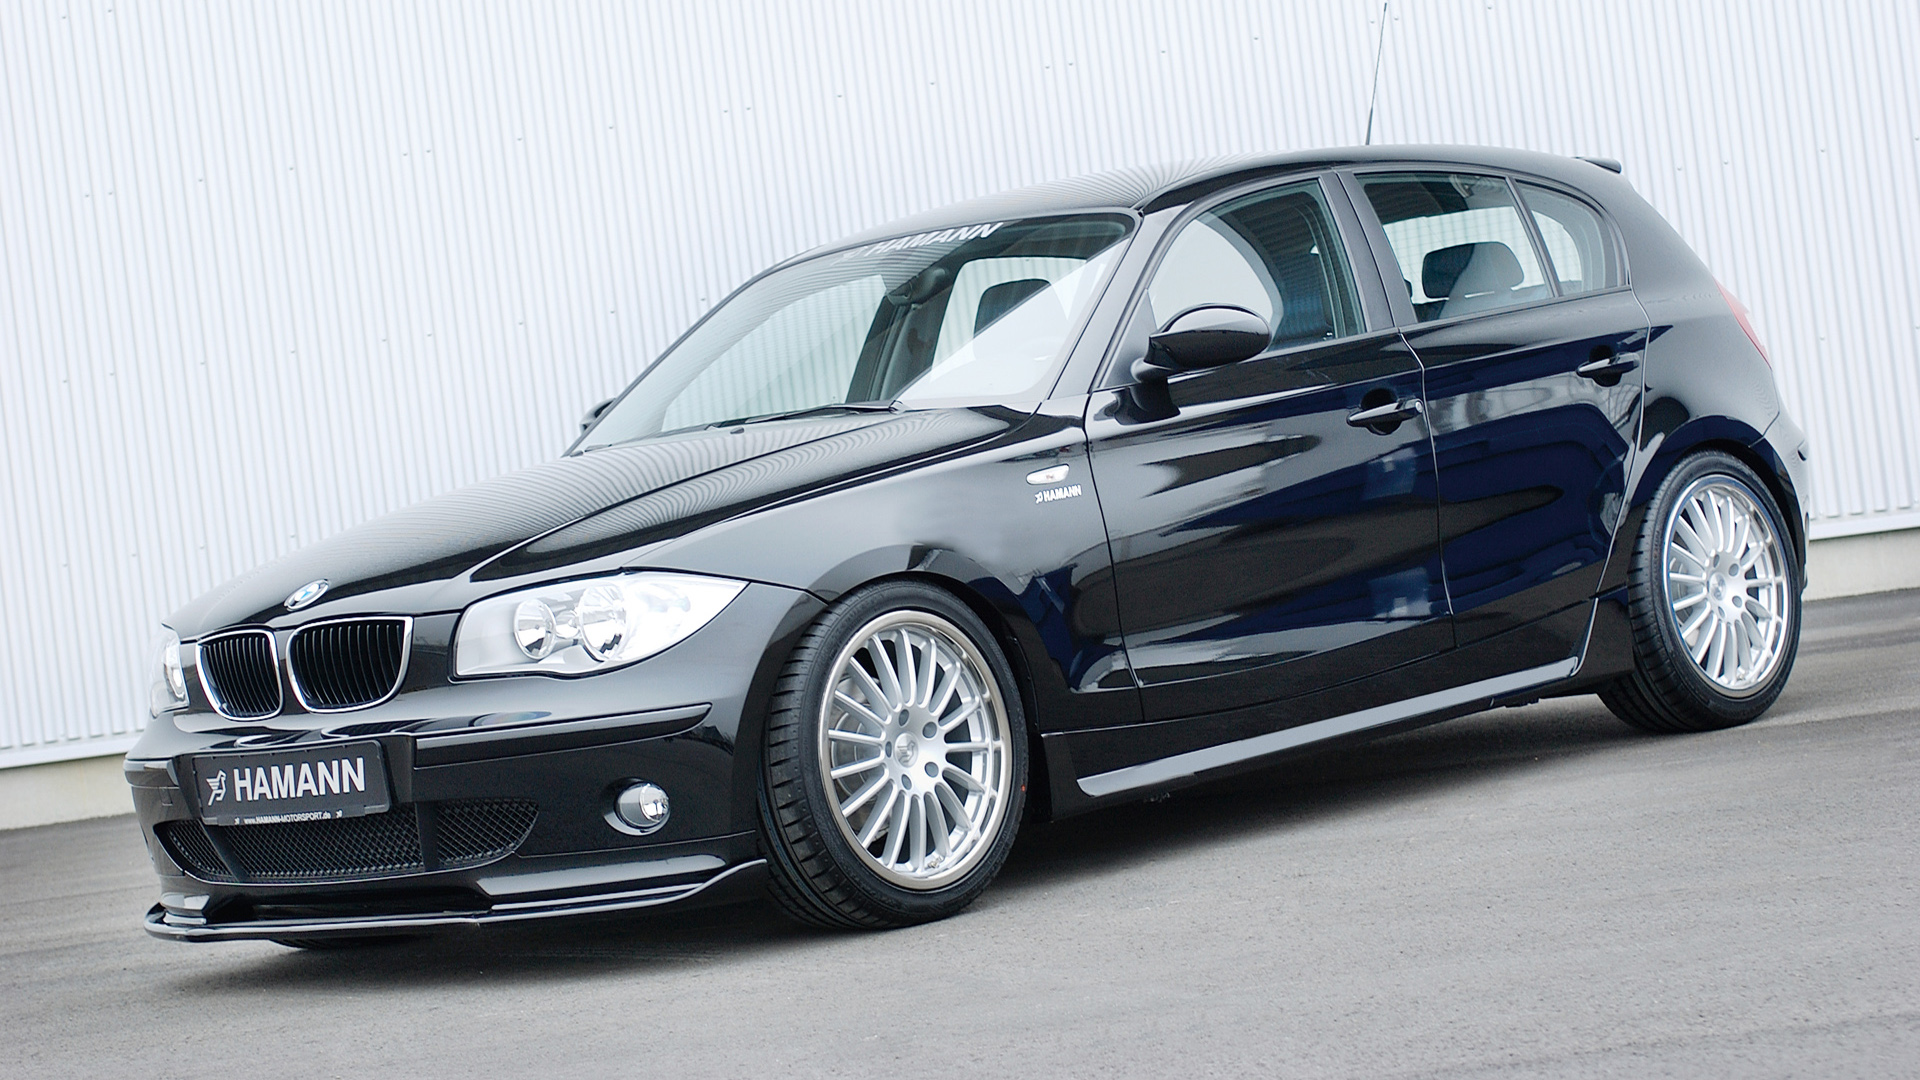 bmw 1 series e87 hamann tuning 3 tuning. Black Bedroom Furniture Sets. Home Design Ideas